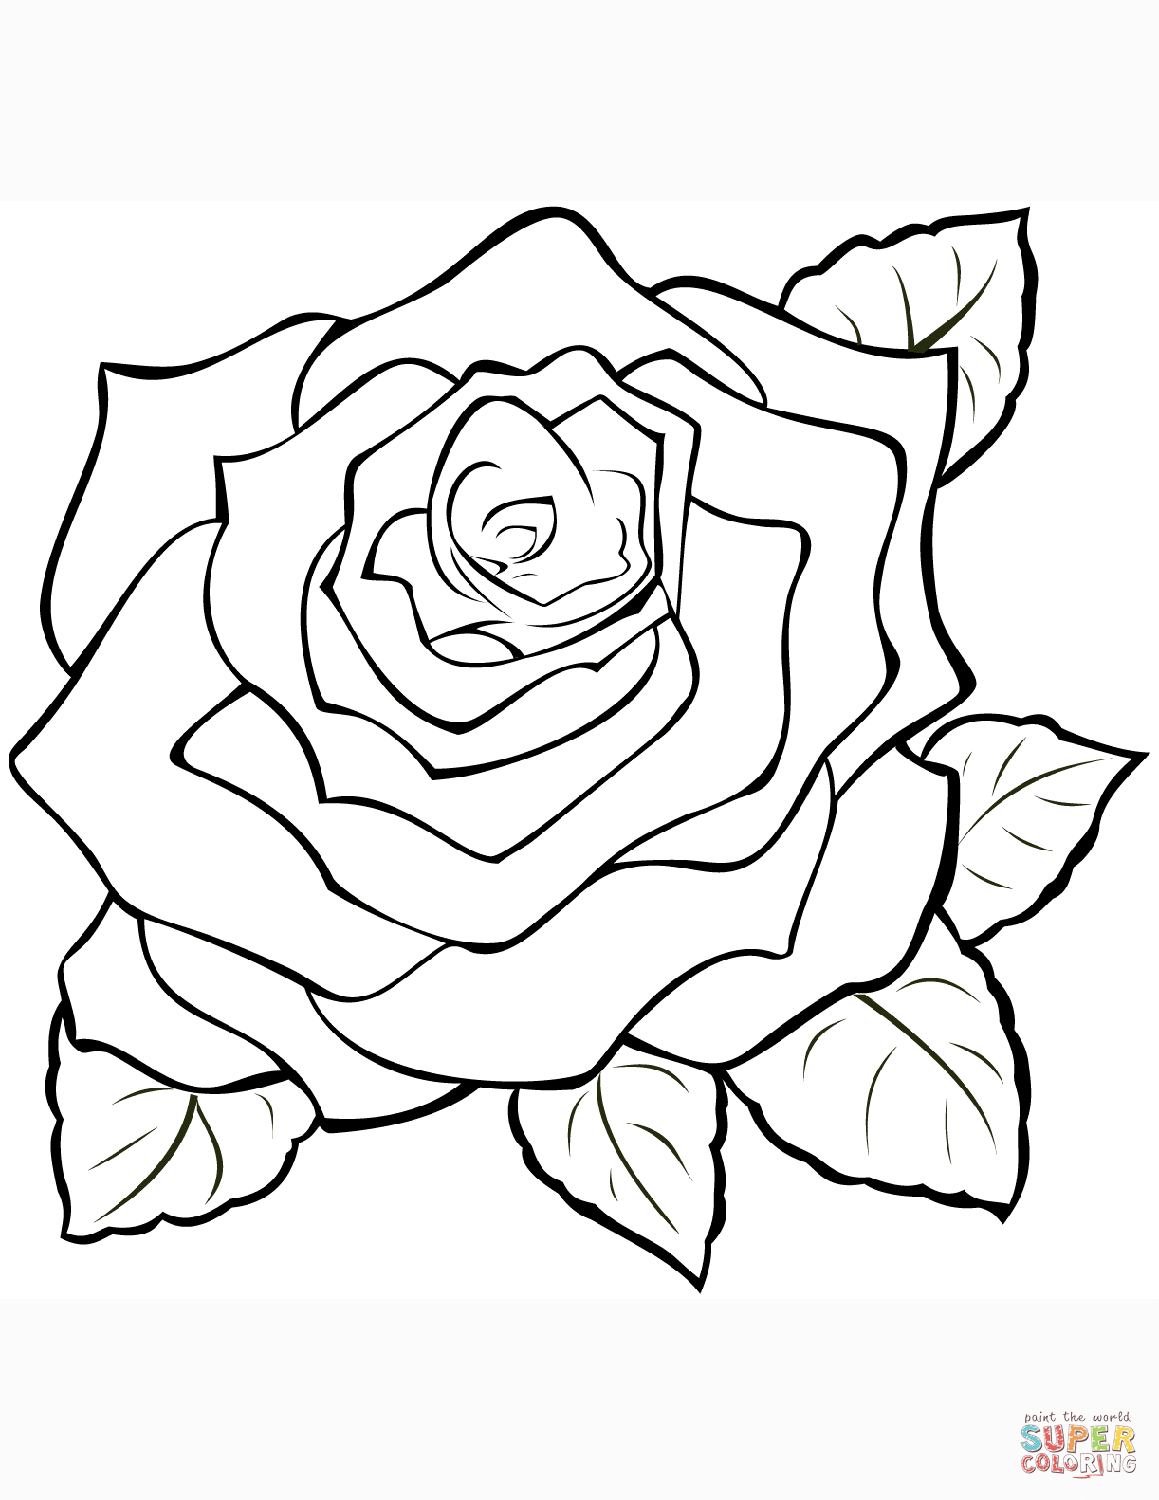 rose coloring pages to print rose coloring page free printable coloring pages pages coloring print rose to